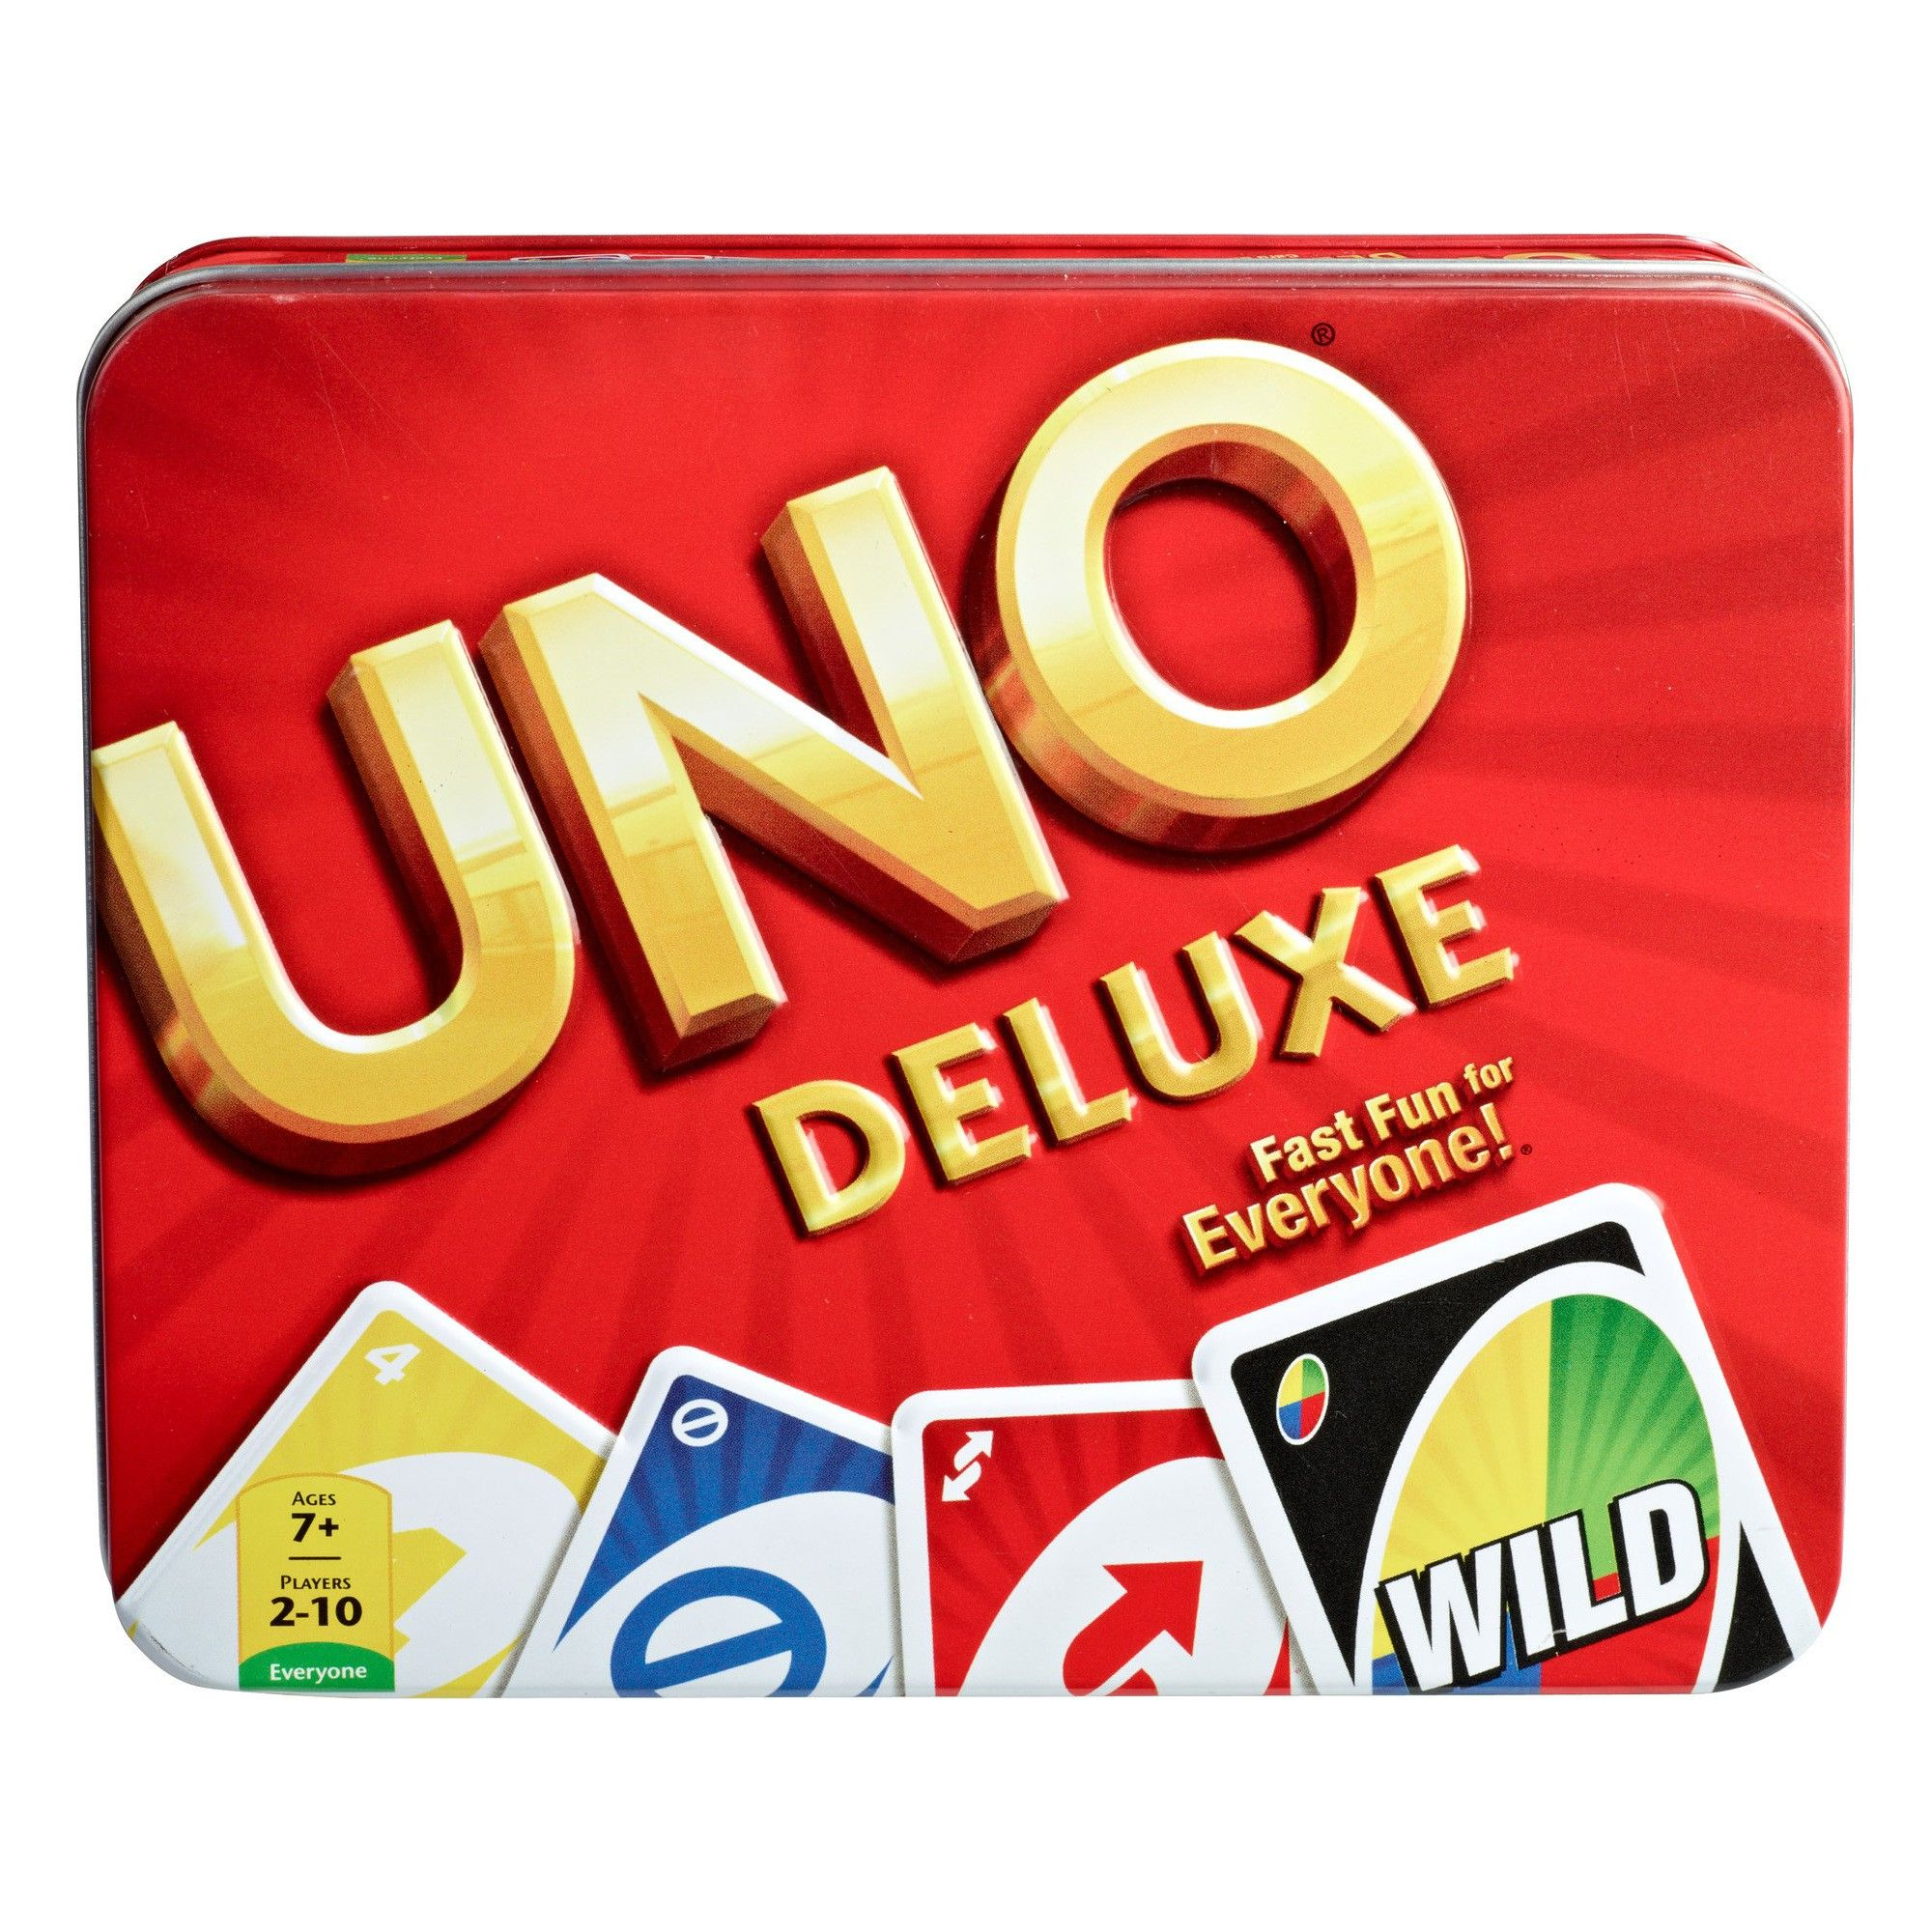 Uno Card Game Tin, Card Games (With images) Uno card